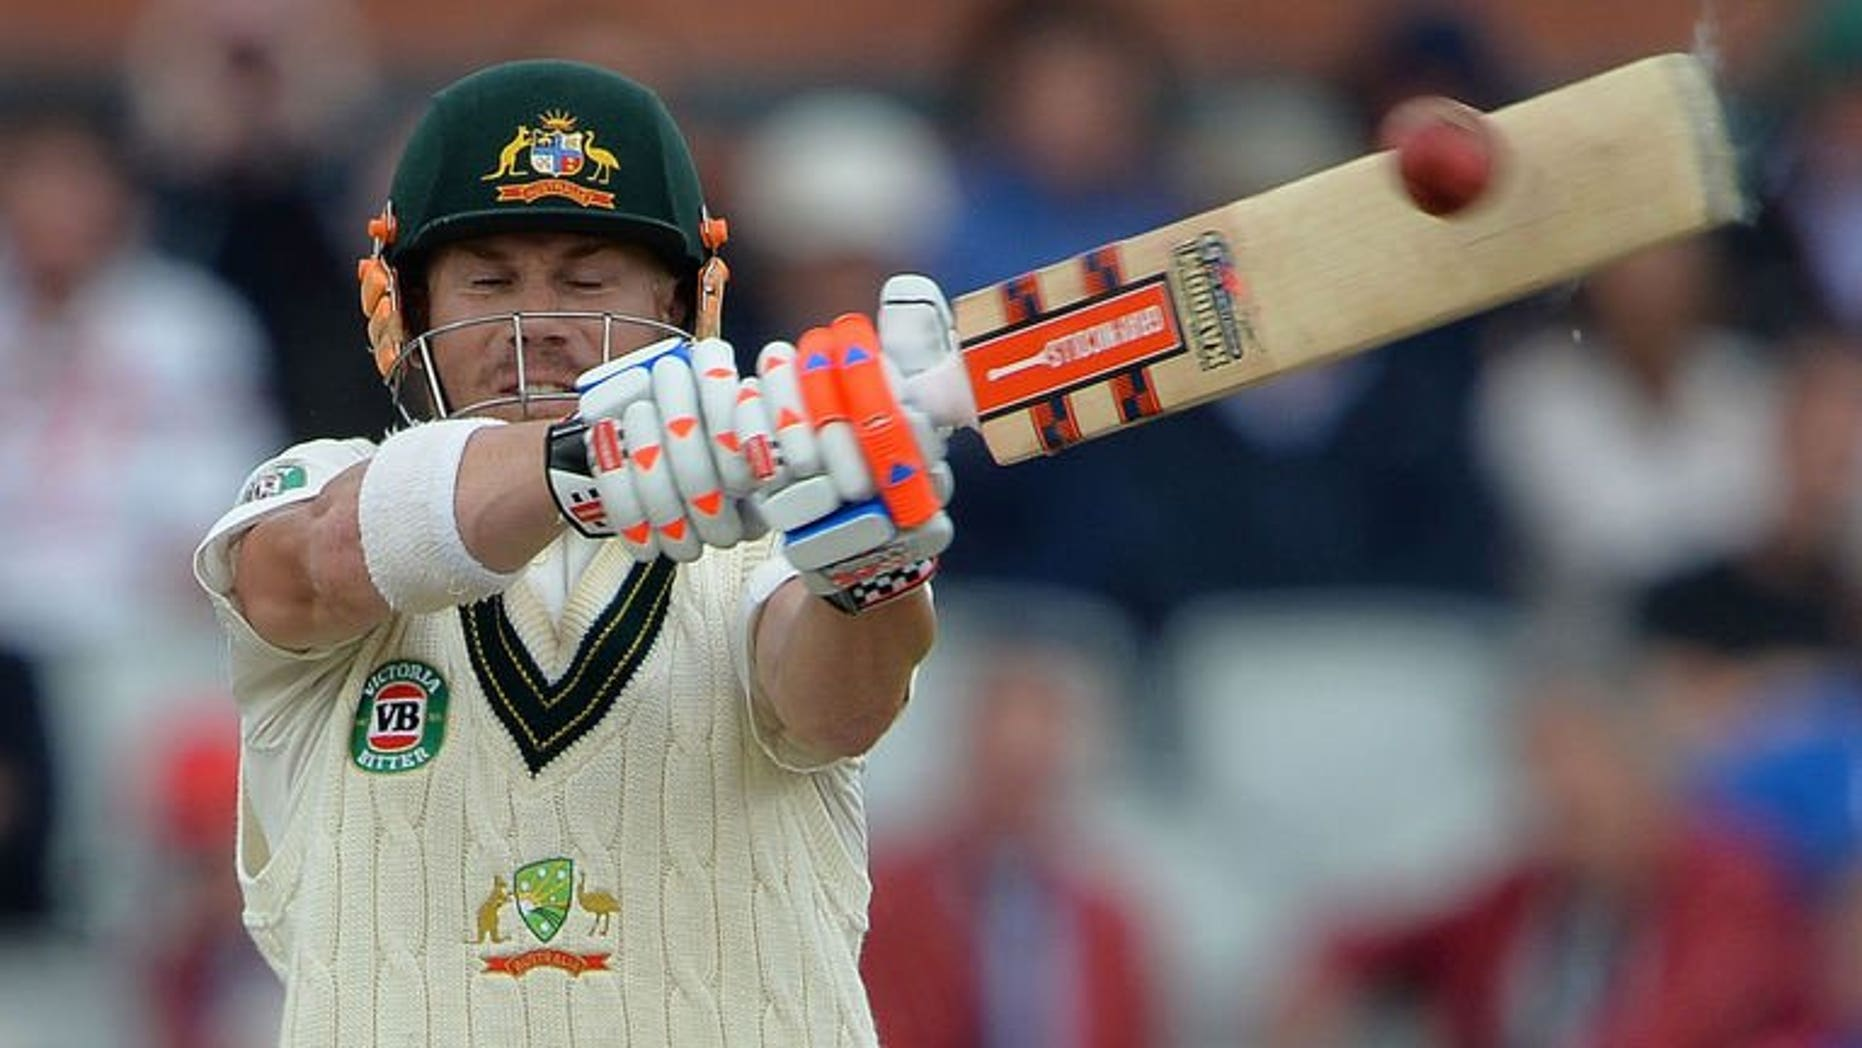 Australia's David Warner plays a shot at Old Trafford in Manchester on August 4, 2013. Warner insists he is relishing the jeers of the Old Trafford crowd that have accompanied his return to Test cricket.